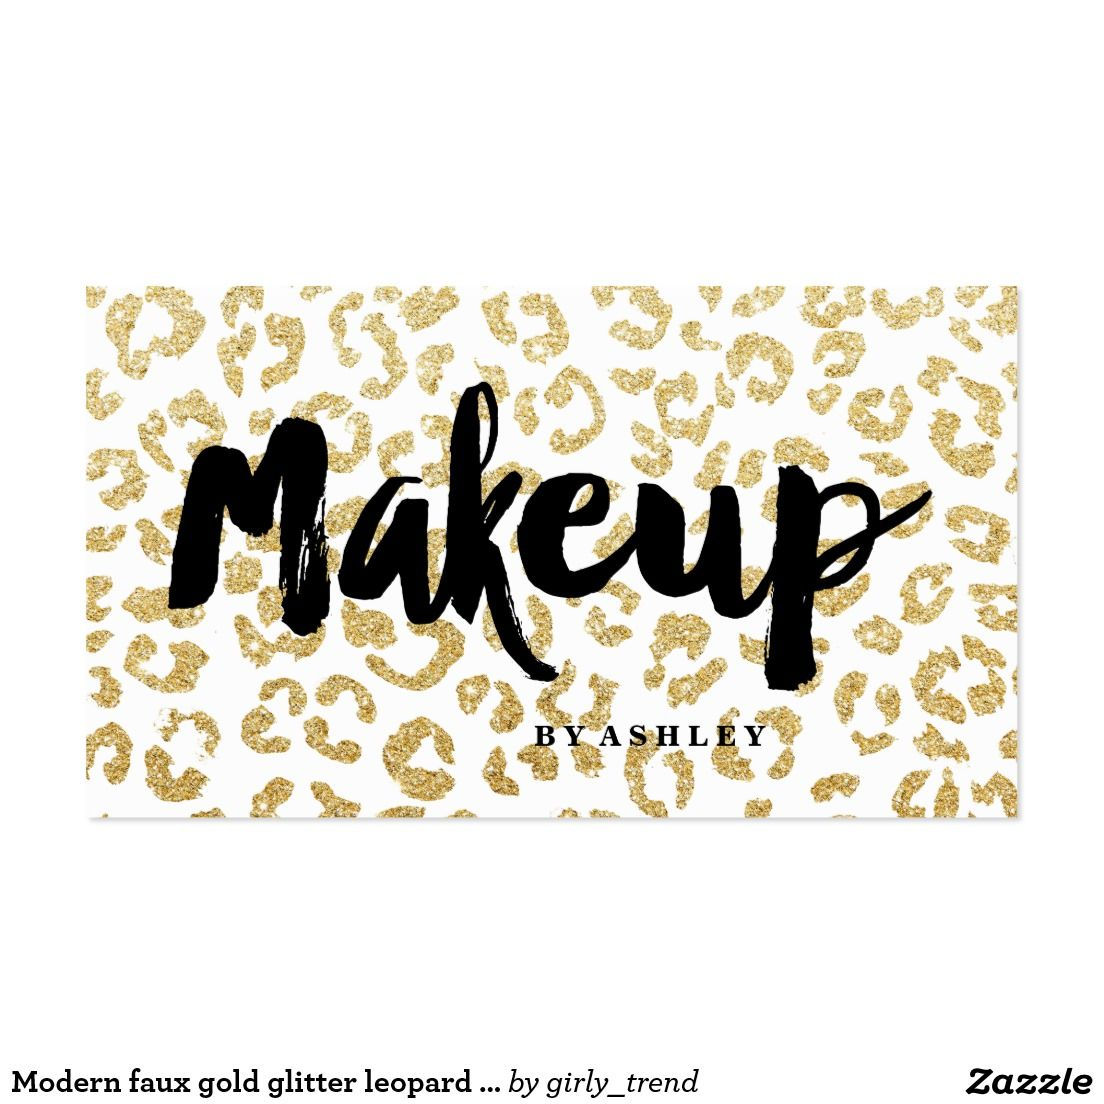 Modern faux gold glitter leopard makeup typography business card ...